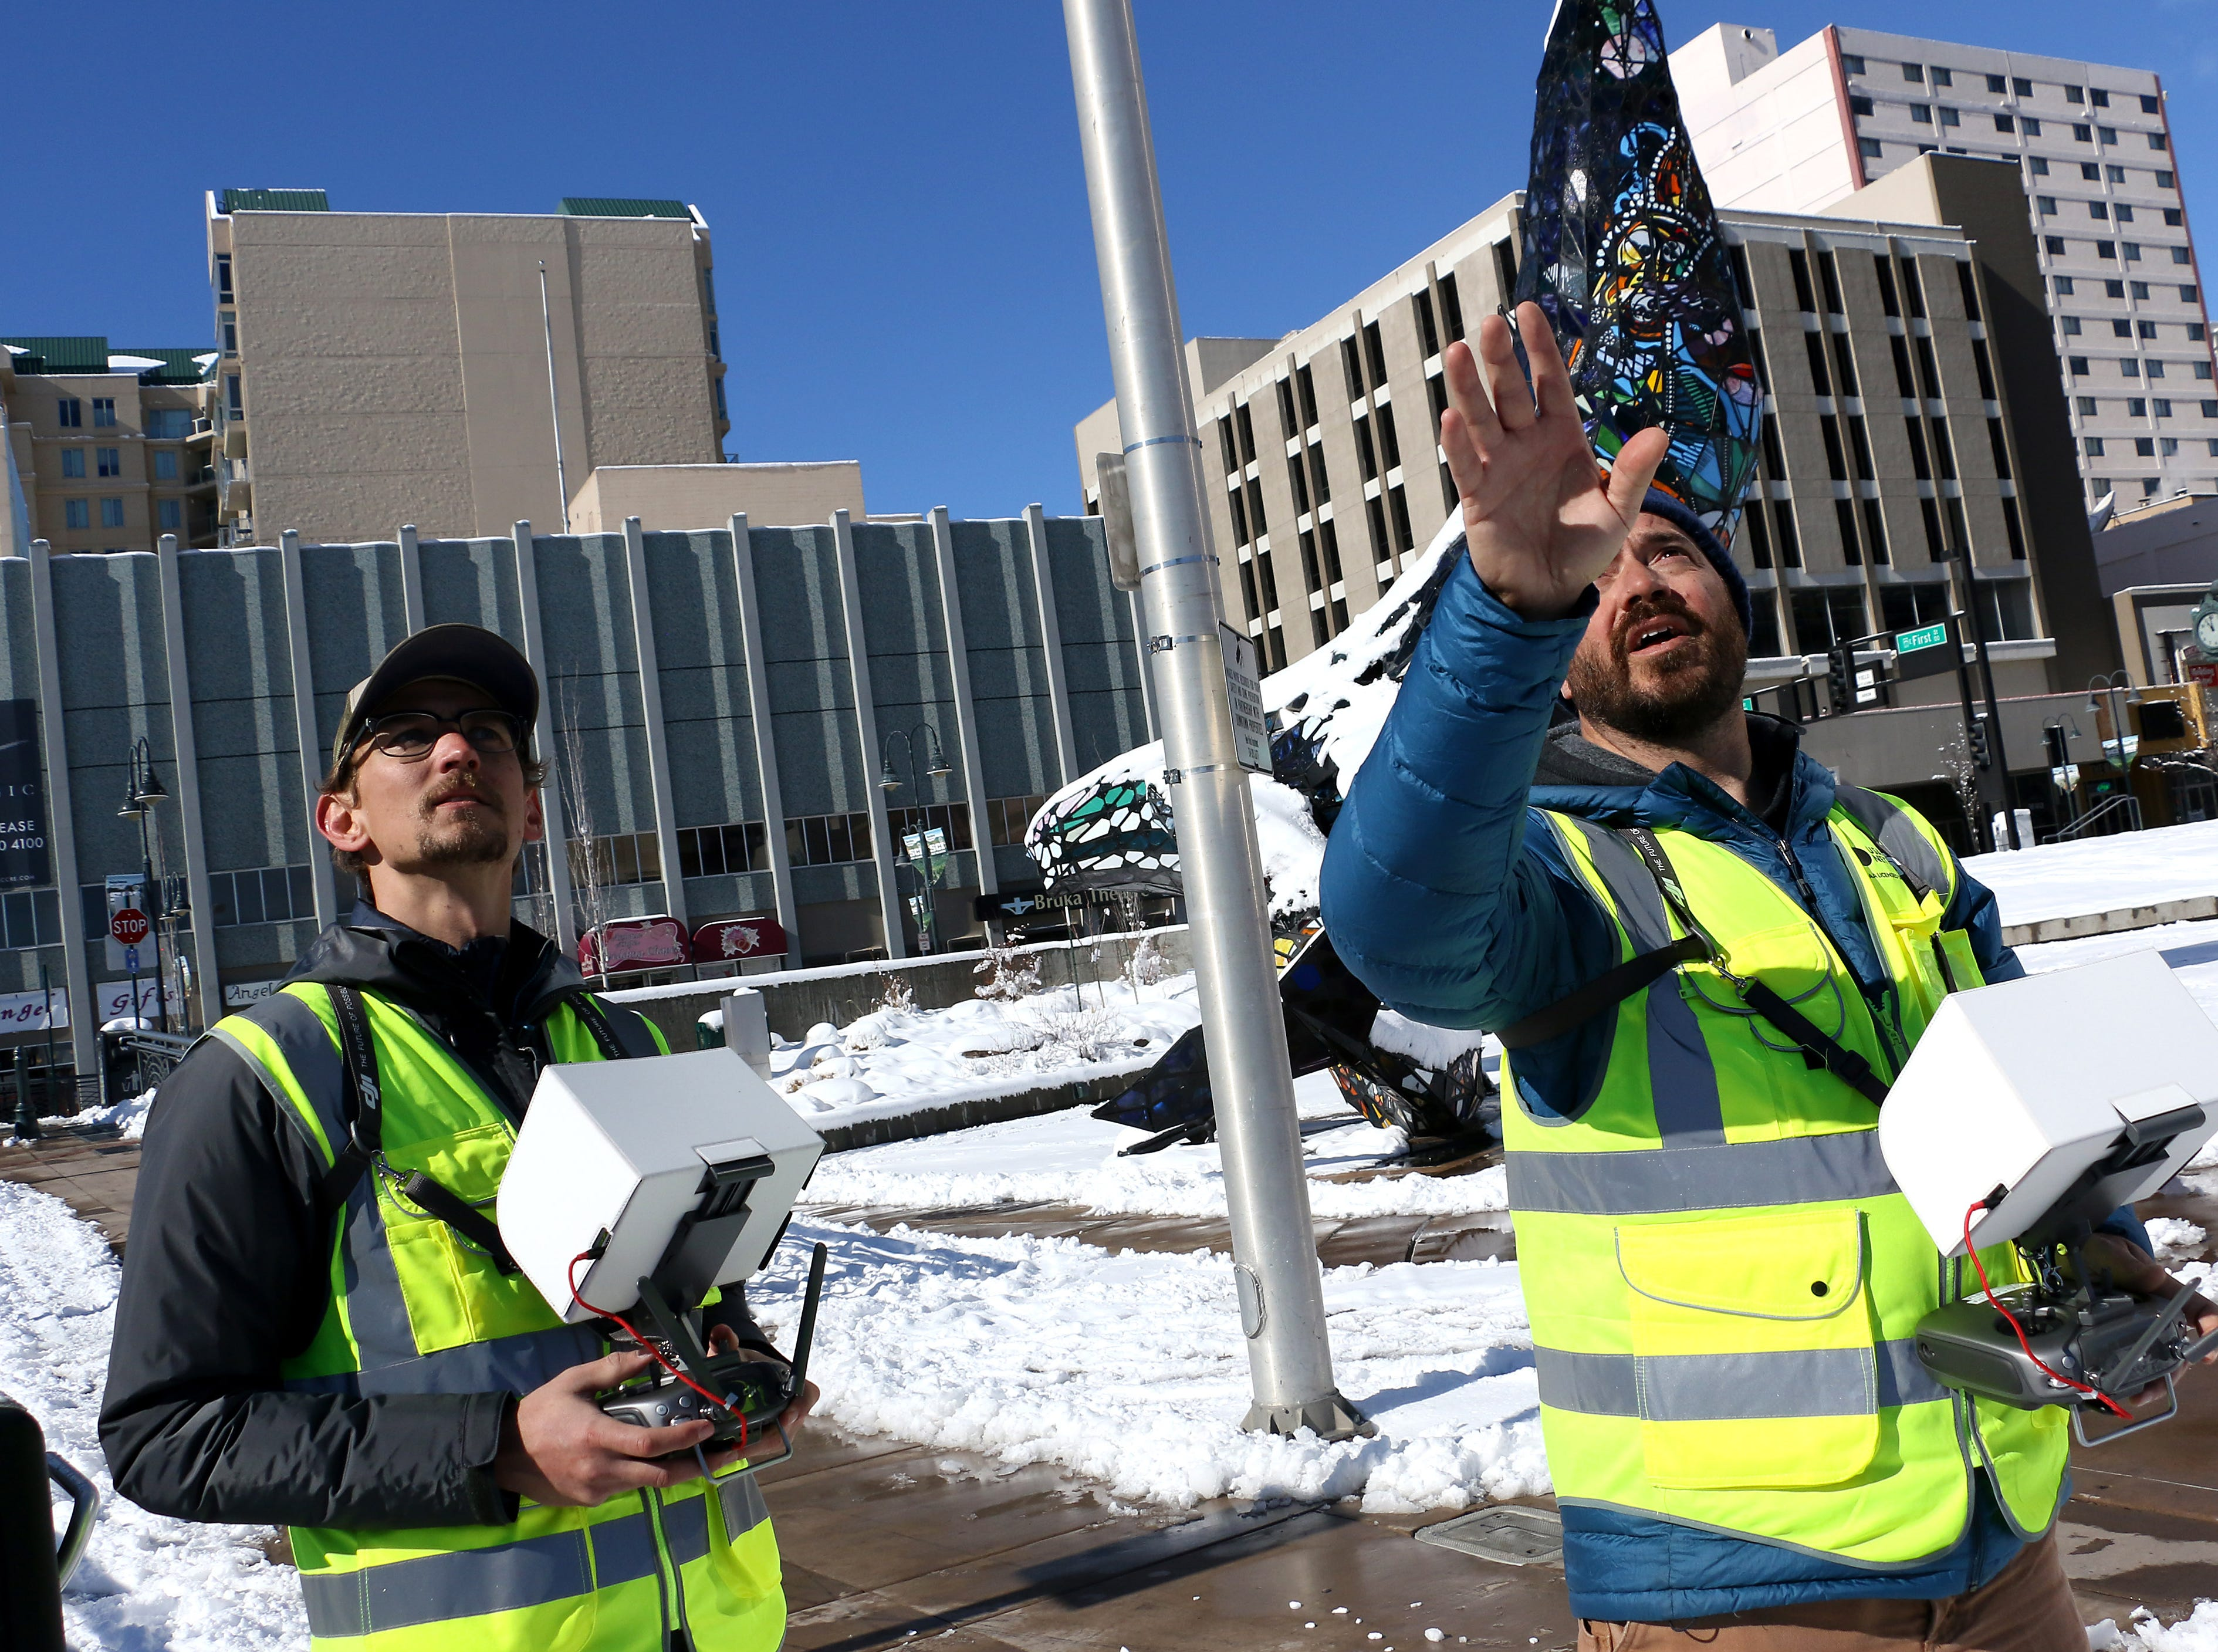 The Reno Gazette Journal drone pilots Ben Spillman, right, and Sam Gross are seen working in Reno's City Plaza on Feb. 10, 2019.